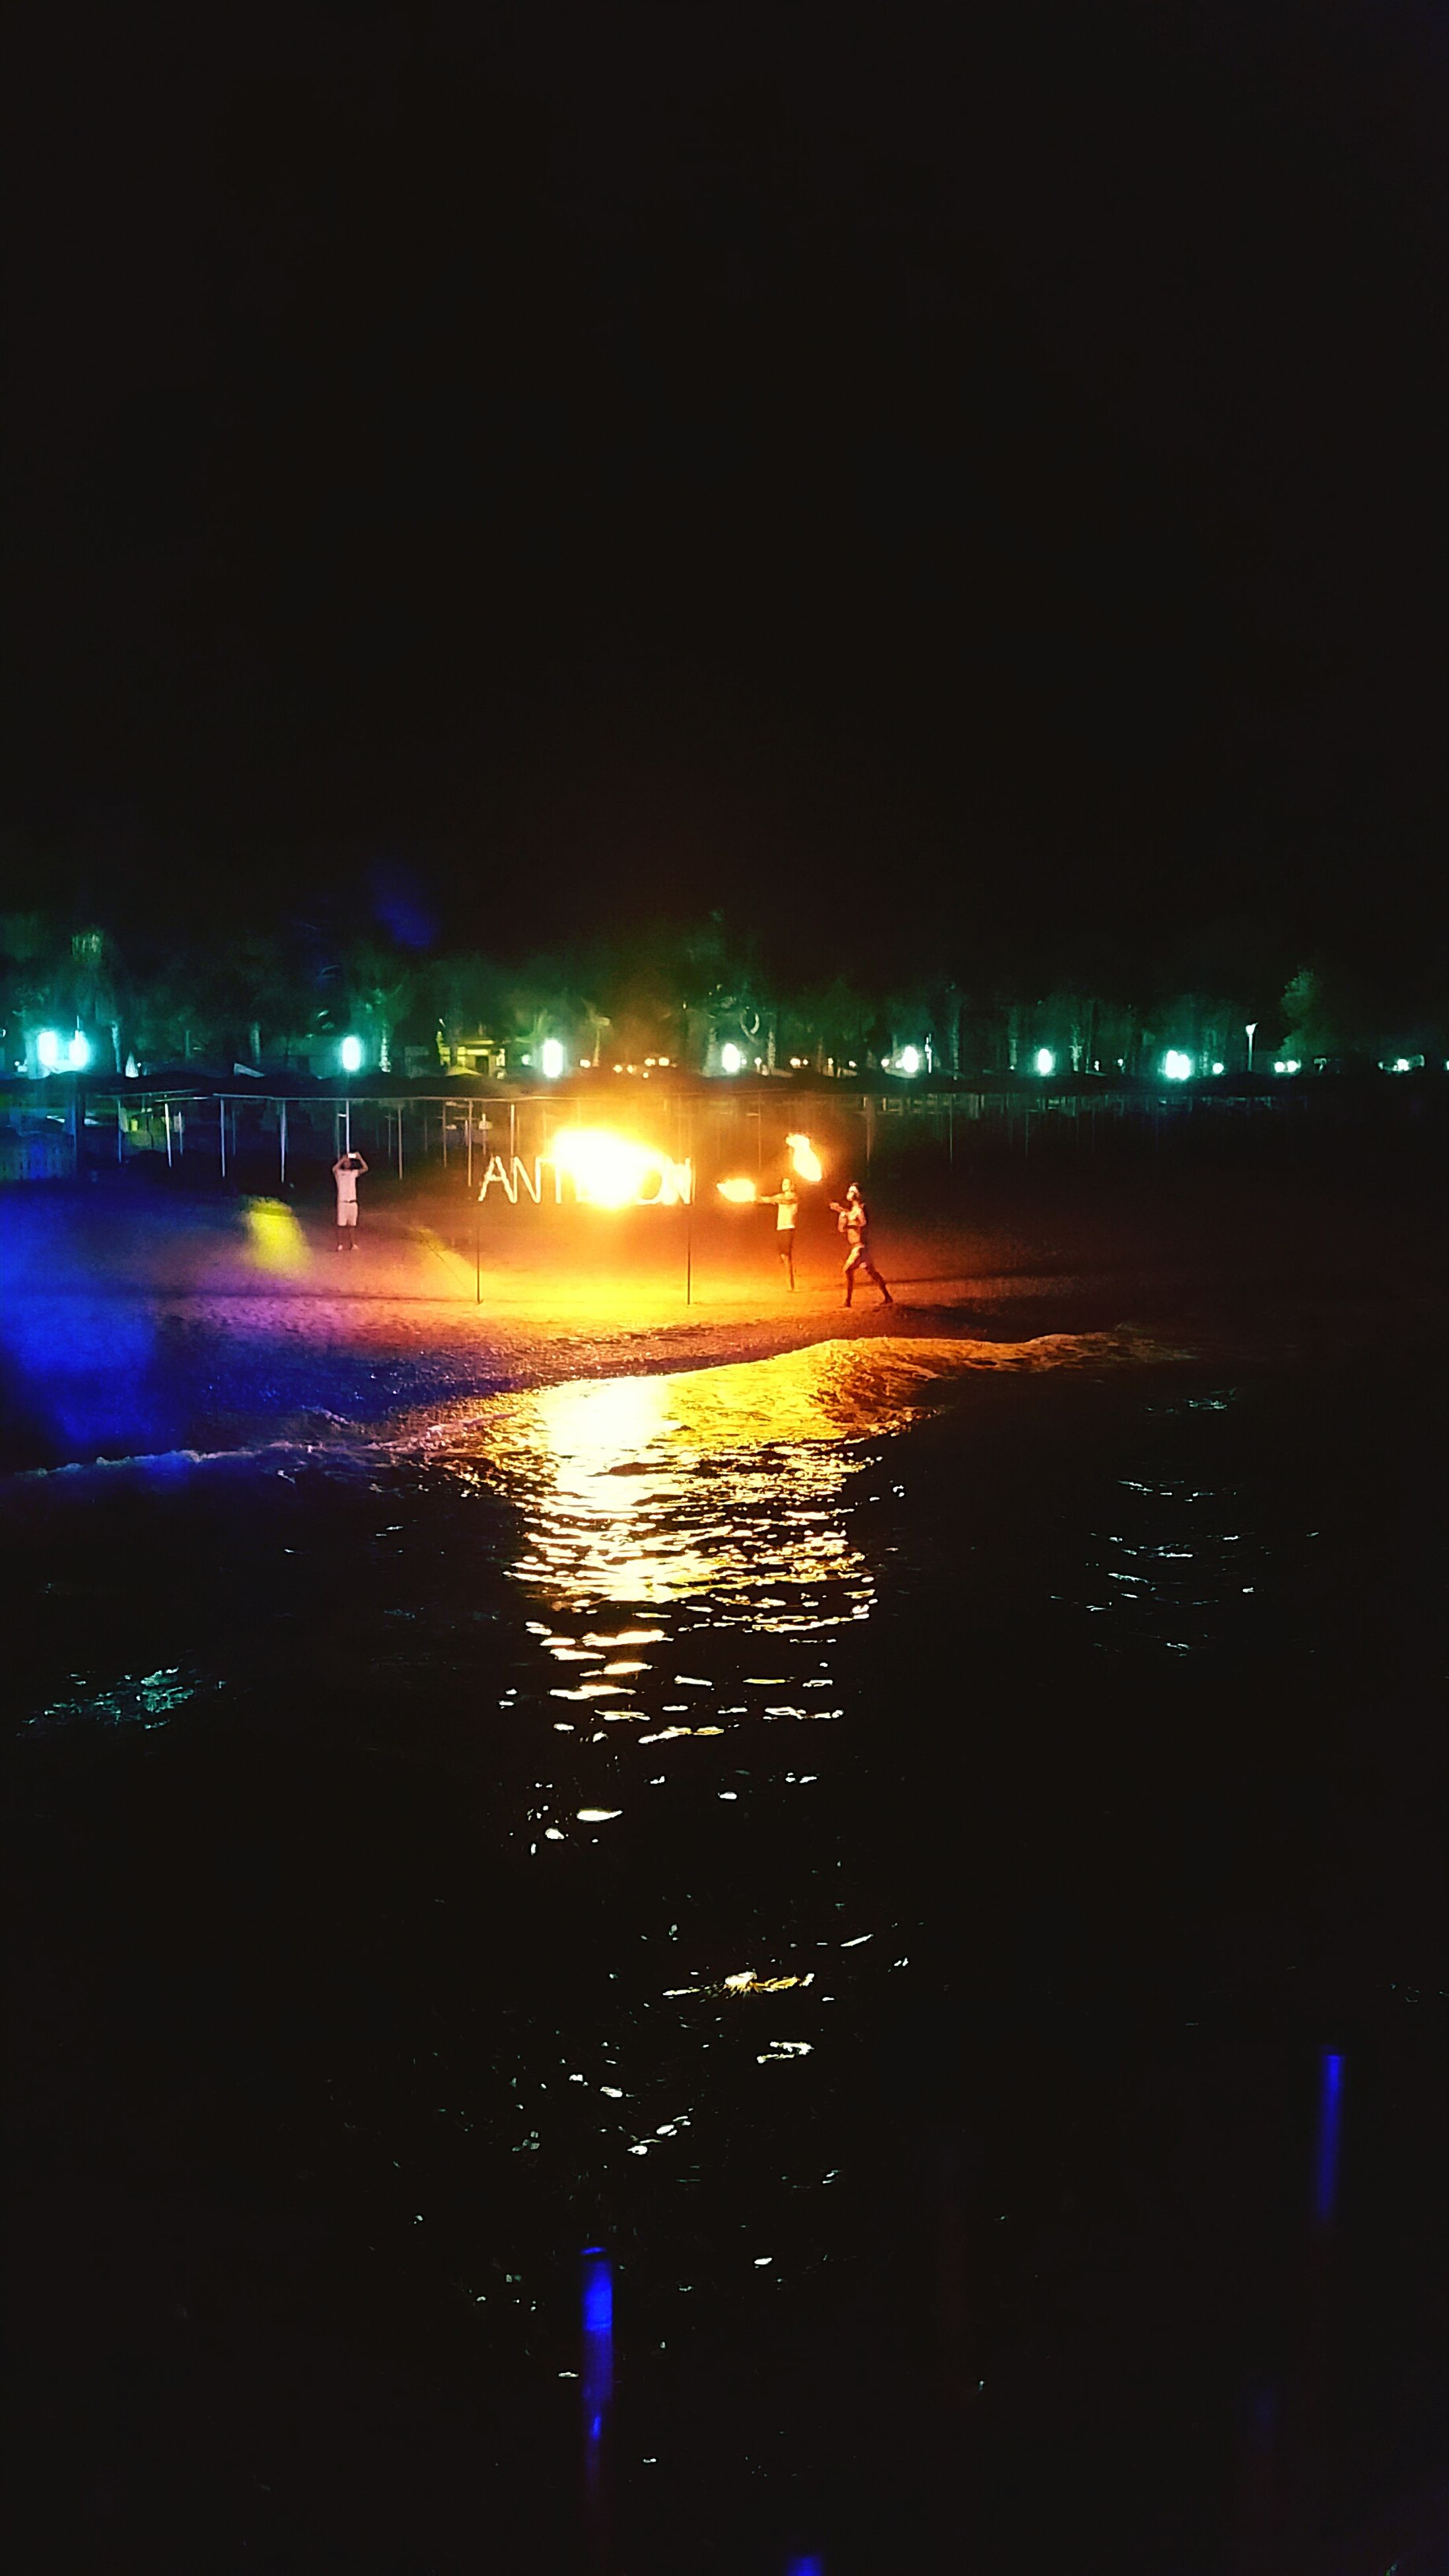 illuminated, night, reflection, water, dark, city, sea, waterfront, tranquil scene, scenics, sky, outdoors, calm, tranquility, multi colored, atmospheric mood, city life, vacations, outline, colorful, ocean, no people